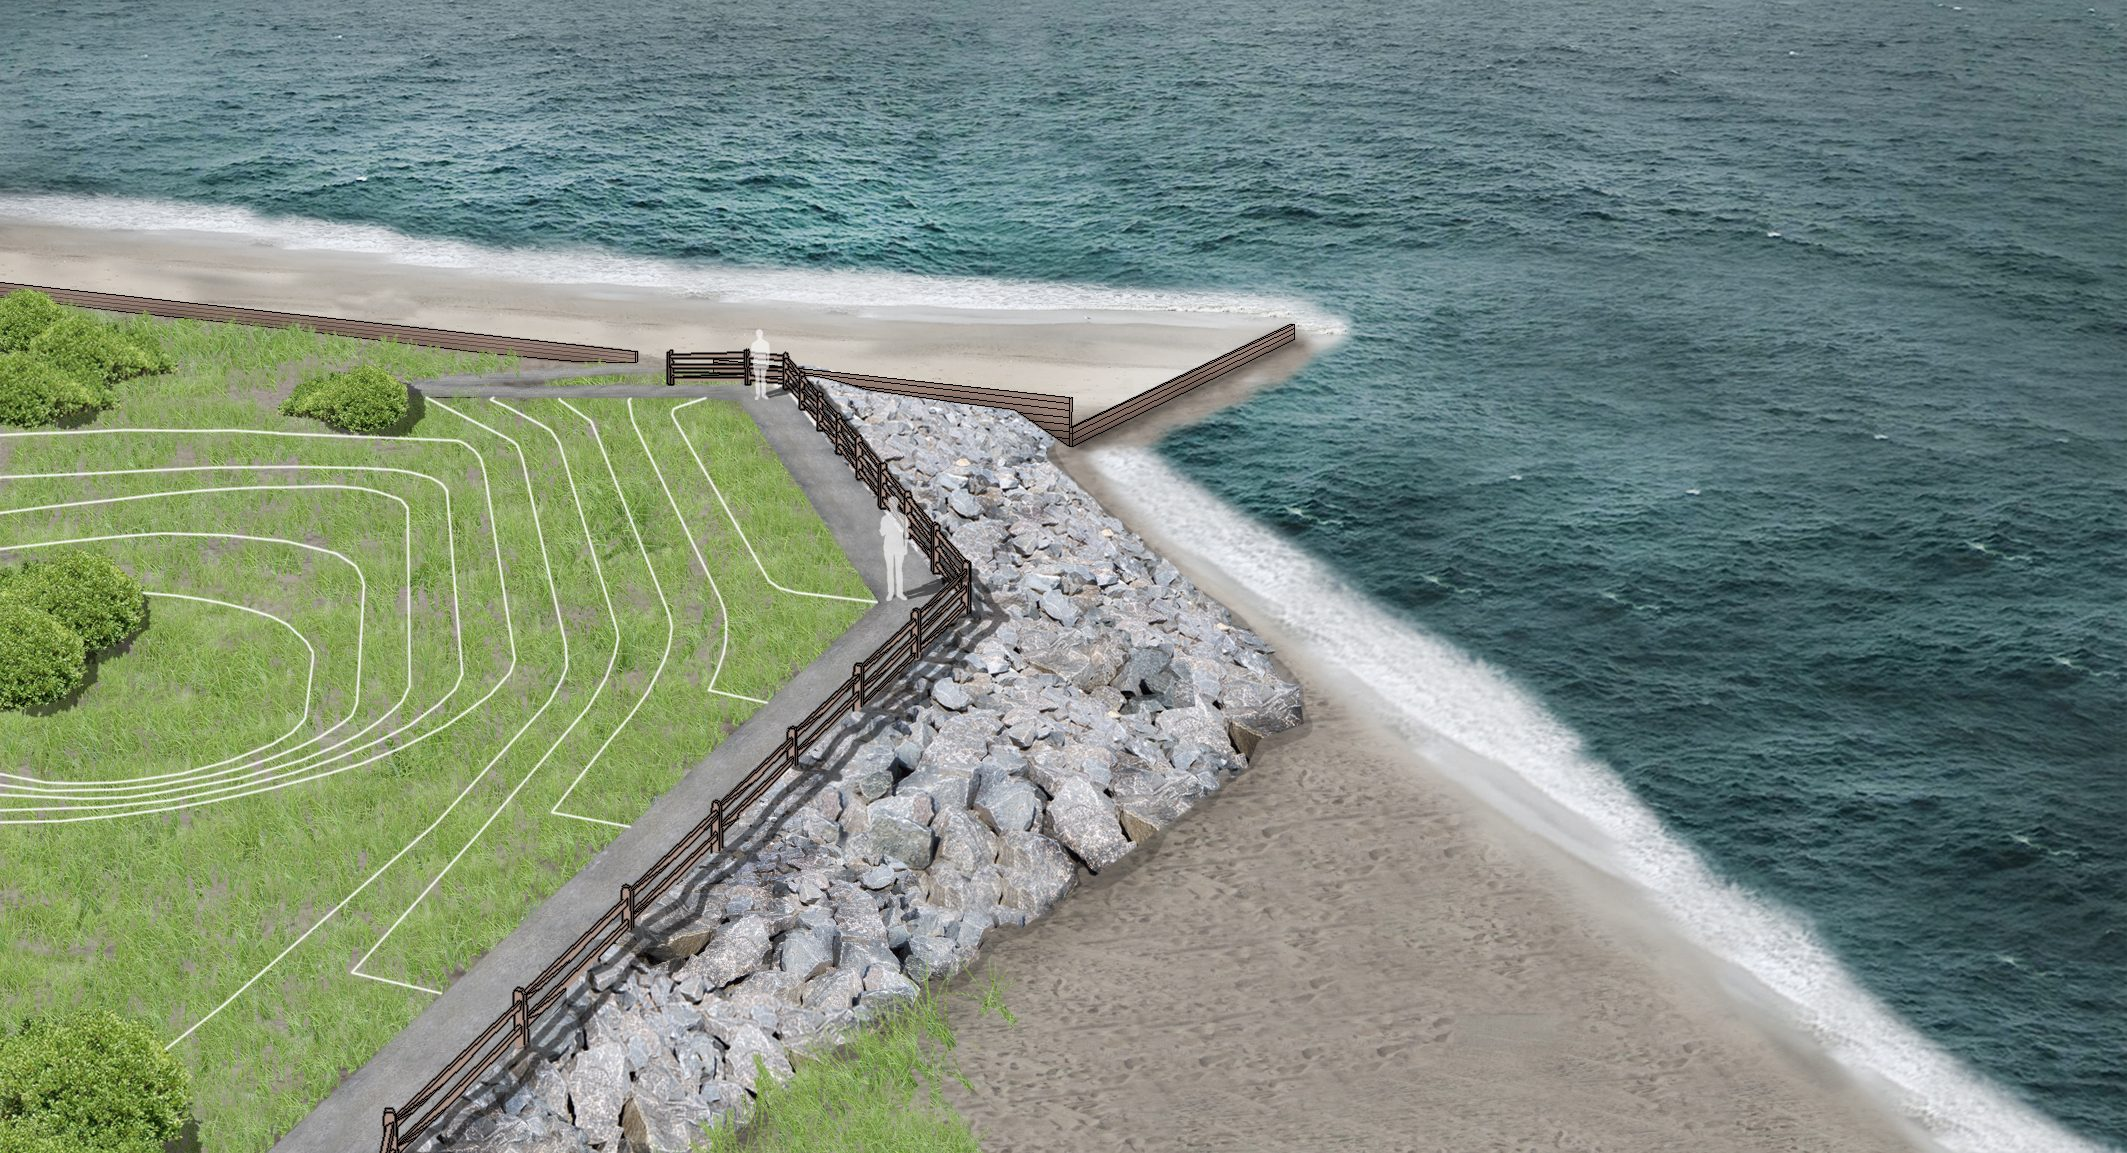 A rendering of the shoreline protection design by Princeton Hydro.